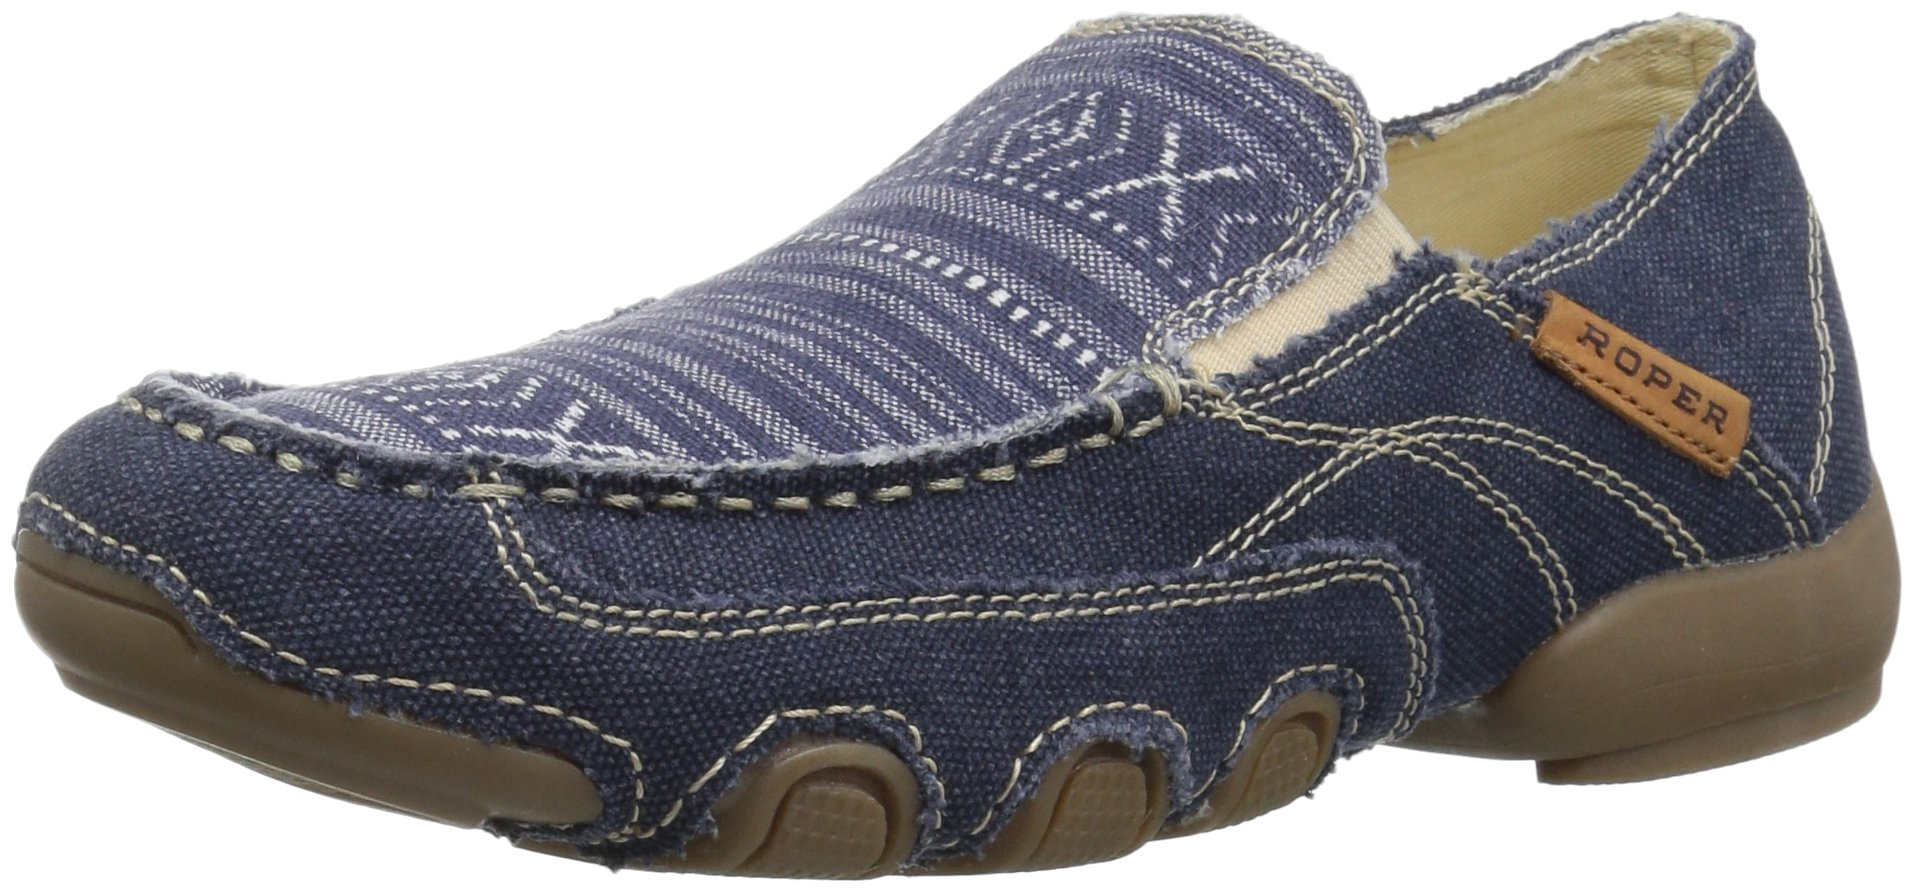 Roper Women's Daisy Driving Style Loafer, Blue, 10.5 Medium US